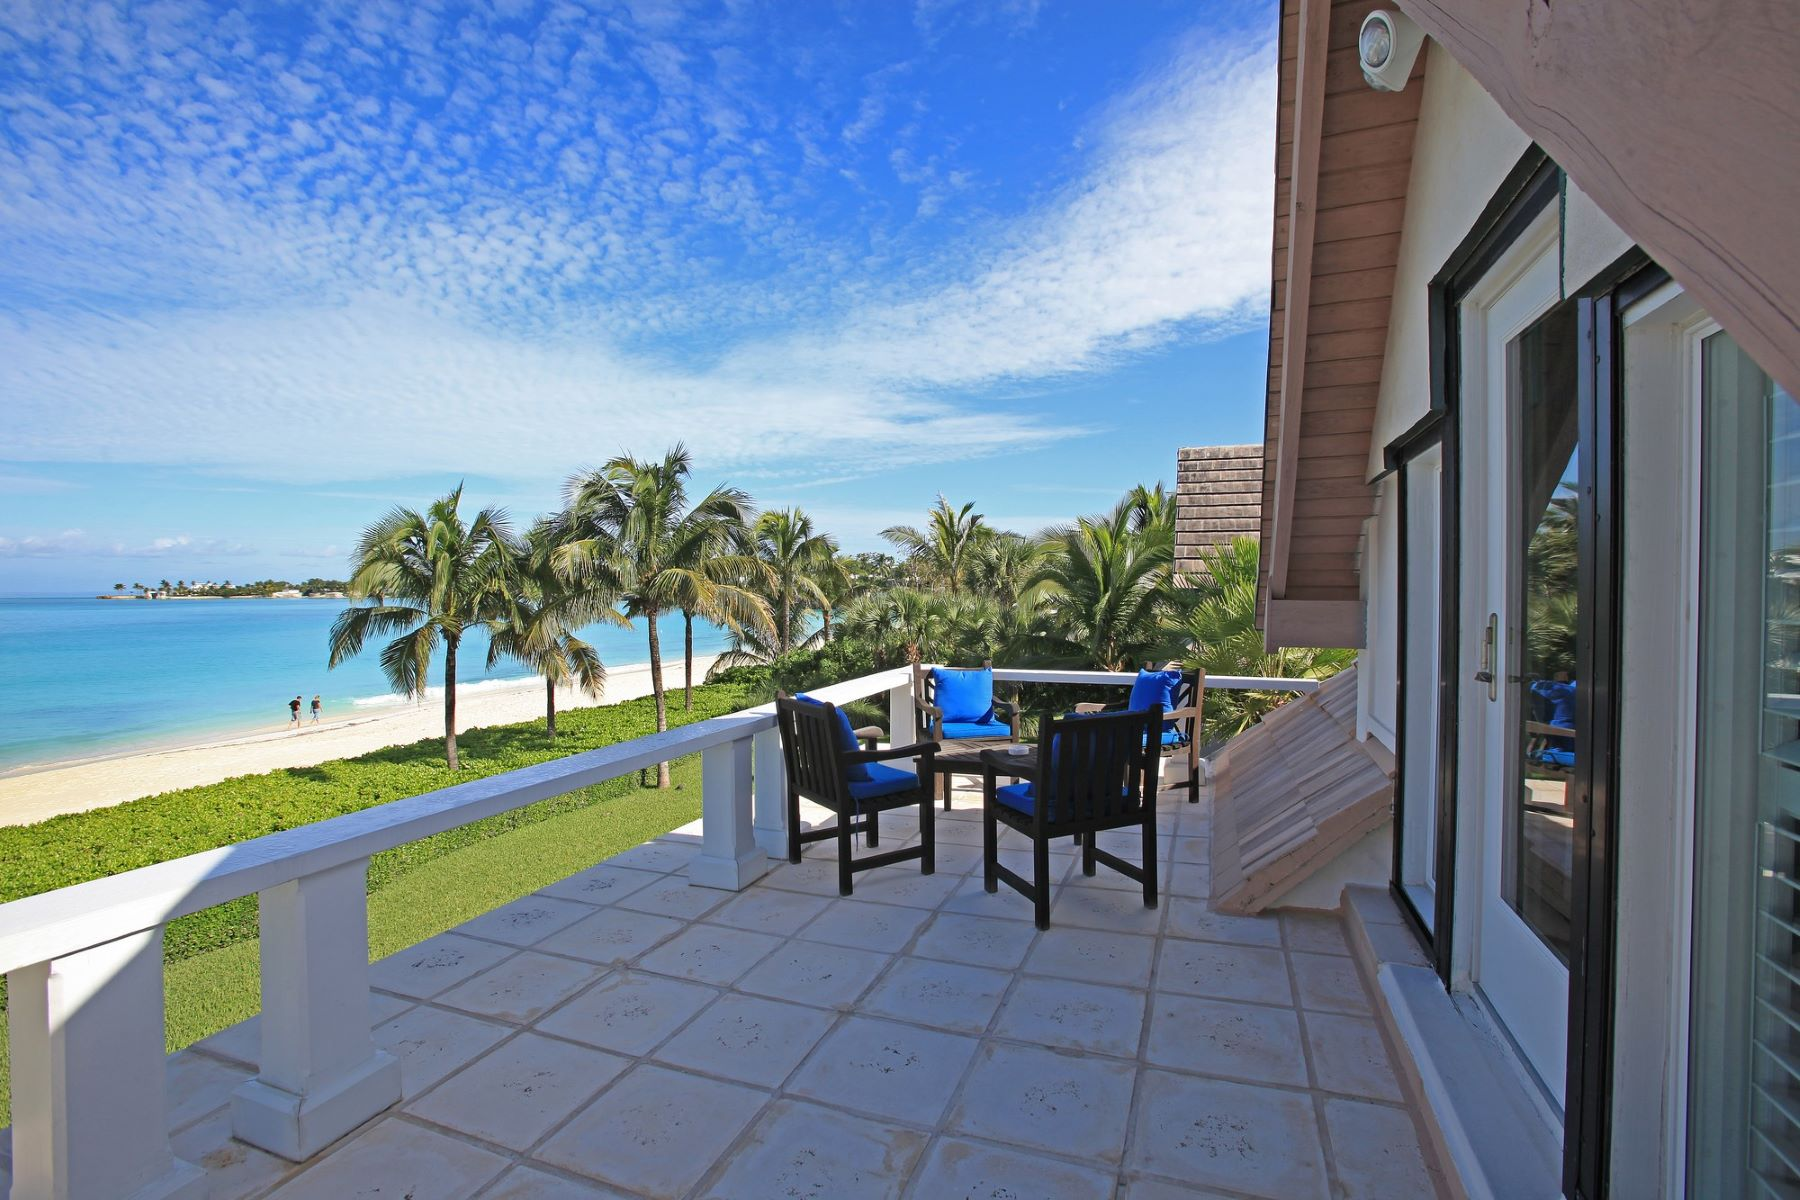 Additional photo for property listing at Lagoon Beach House Other Bahamas, Other Areas In The Bahamas Bahamas